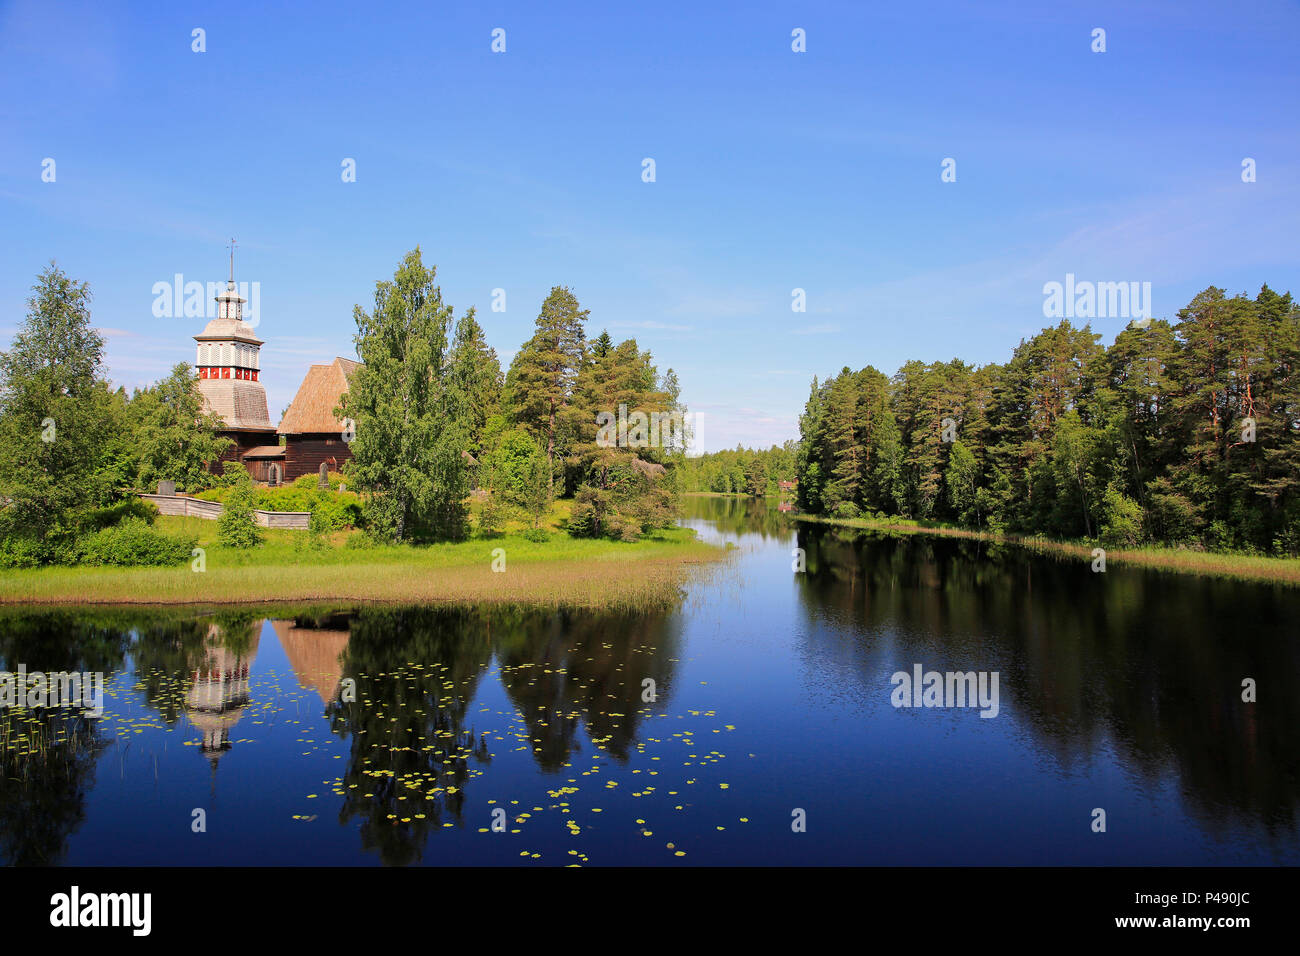 Finnish blue lake and sky landscape with UNESCO World Heritage site, old wooden church of Petajavesi, Finland in summer. The church was built 1763-65. - Stock Image